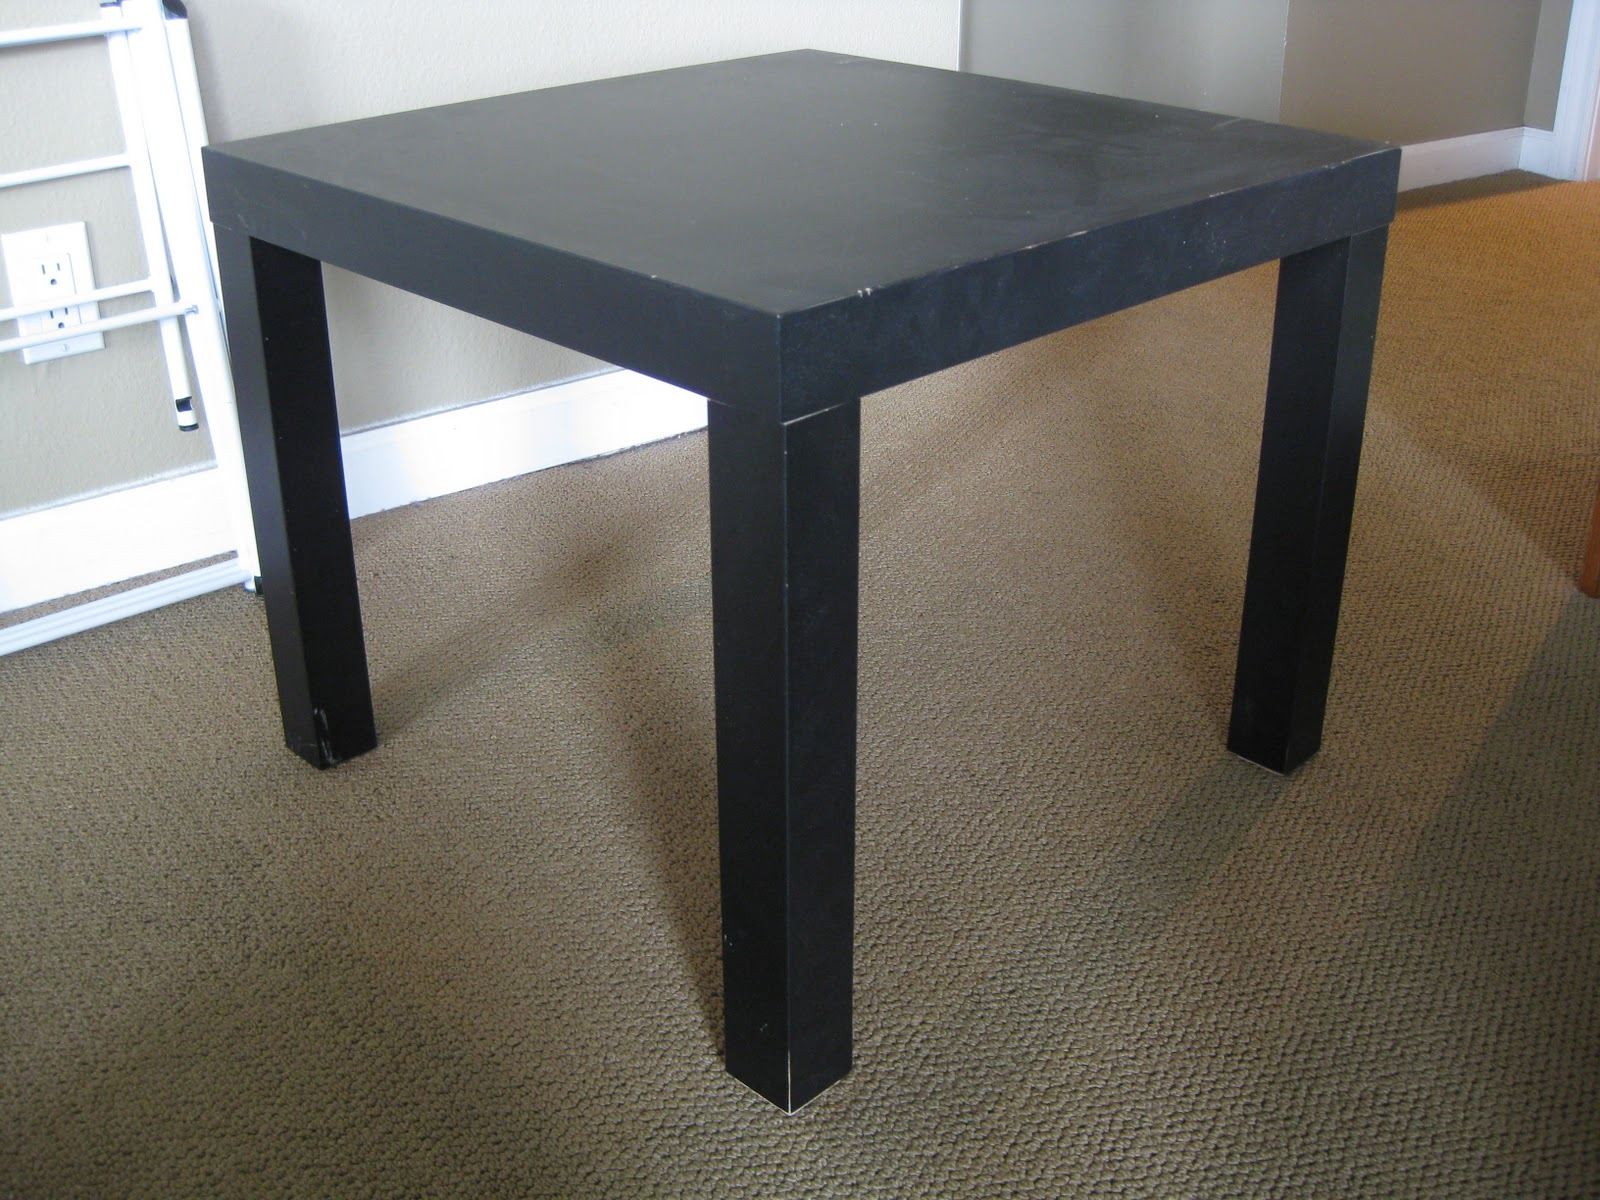 ikea-end-tables-fabulous-about-remodel-decorating-home-ideas-with-ikea-end-tables